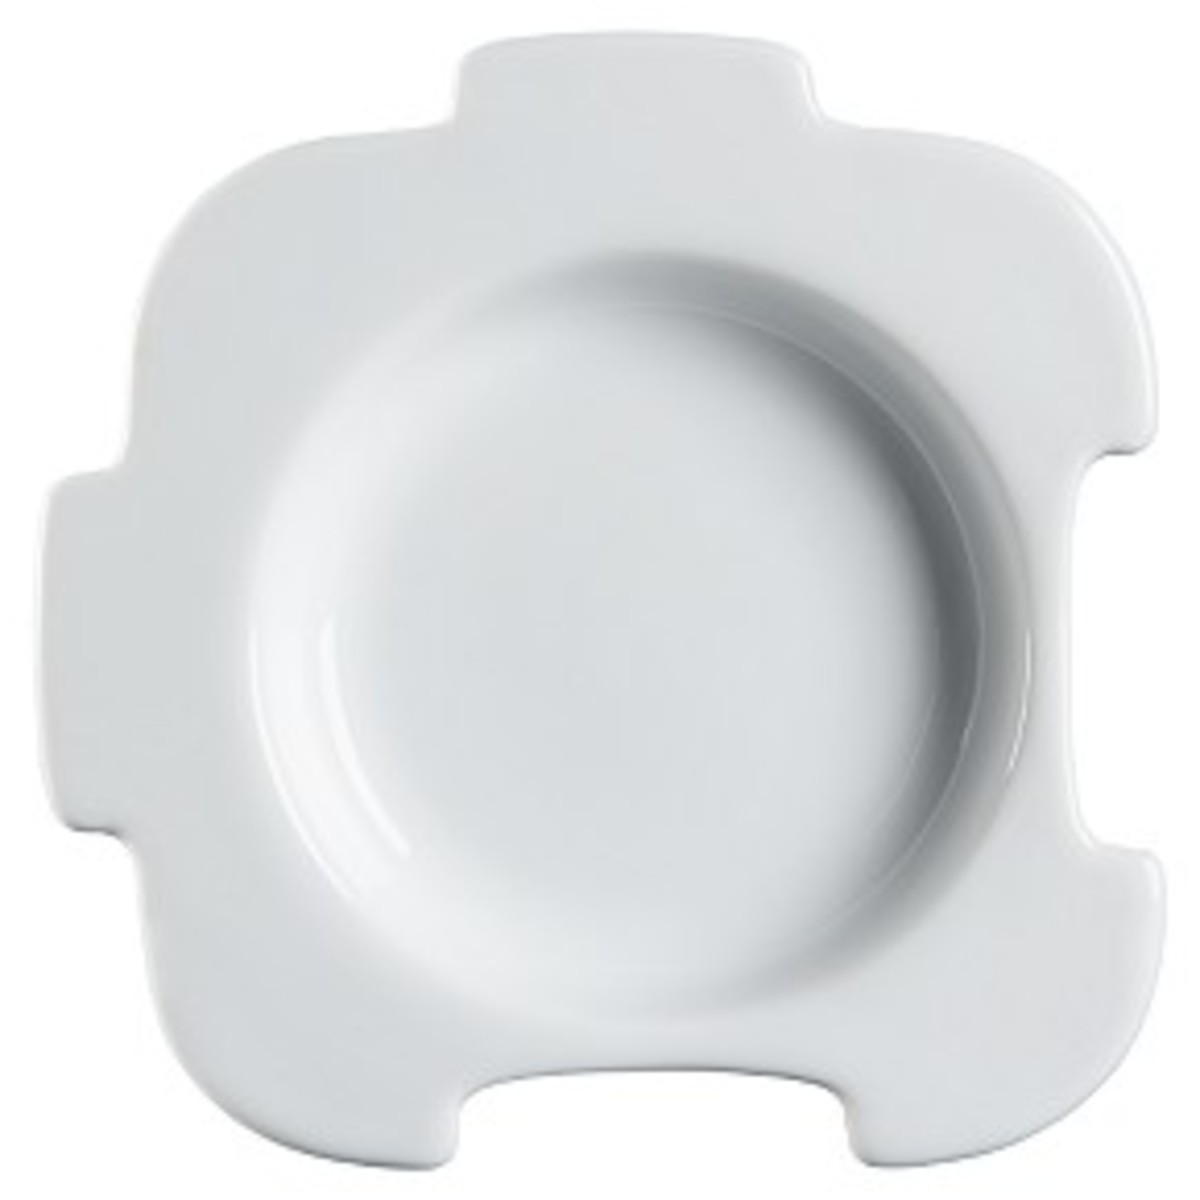 10 White Dinner Plates That Are Anything But Boring